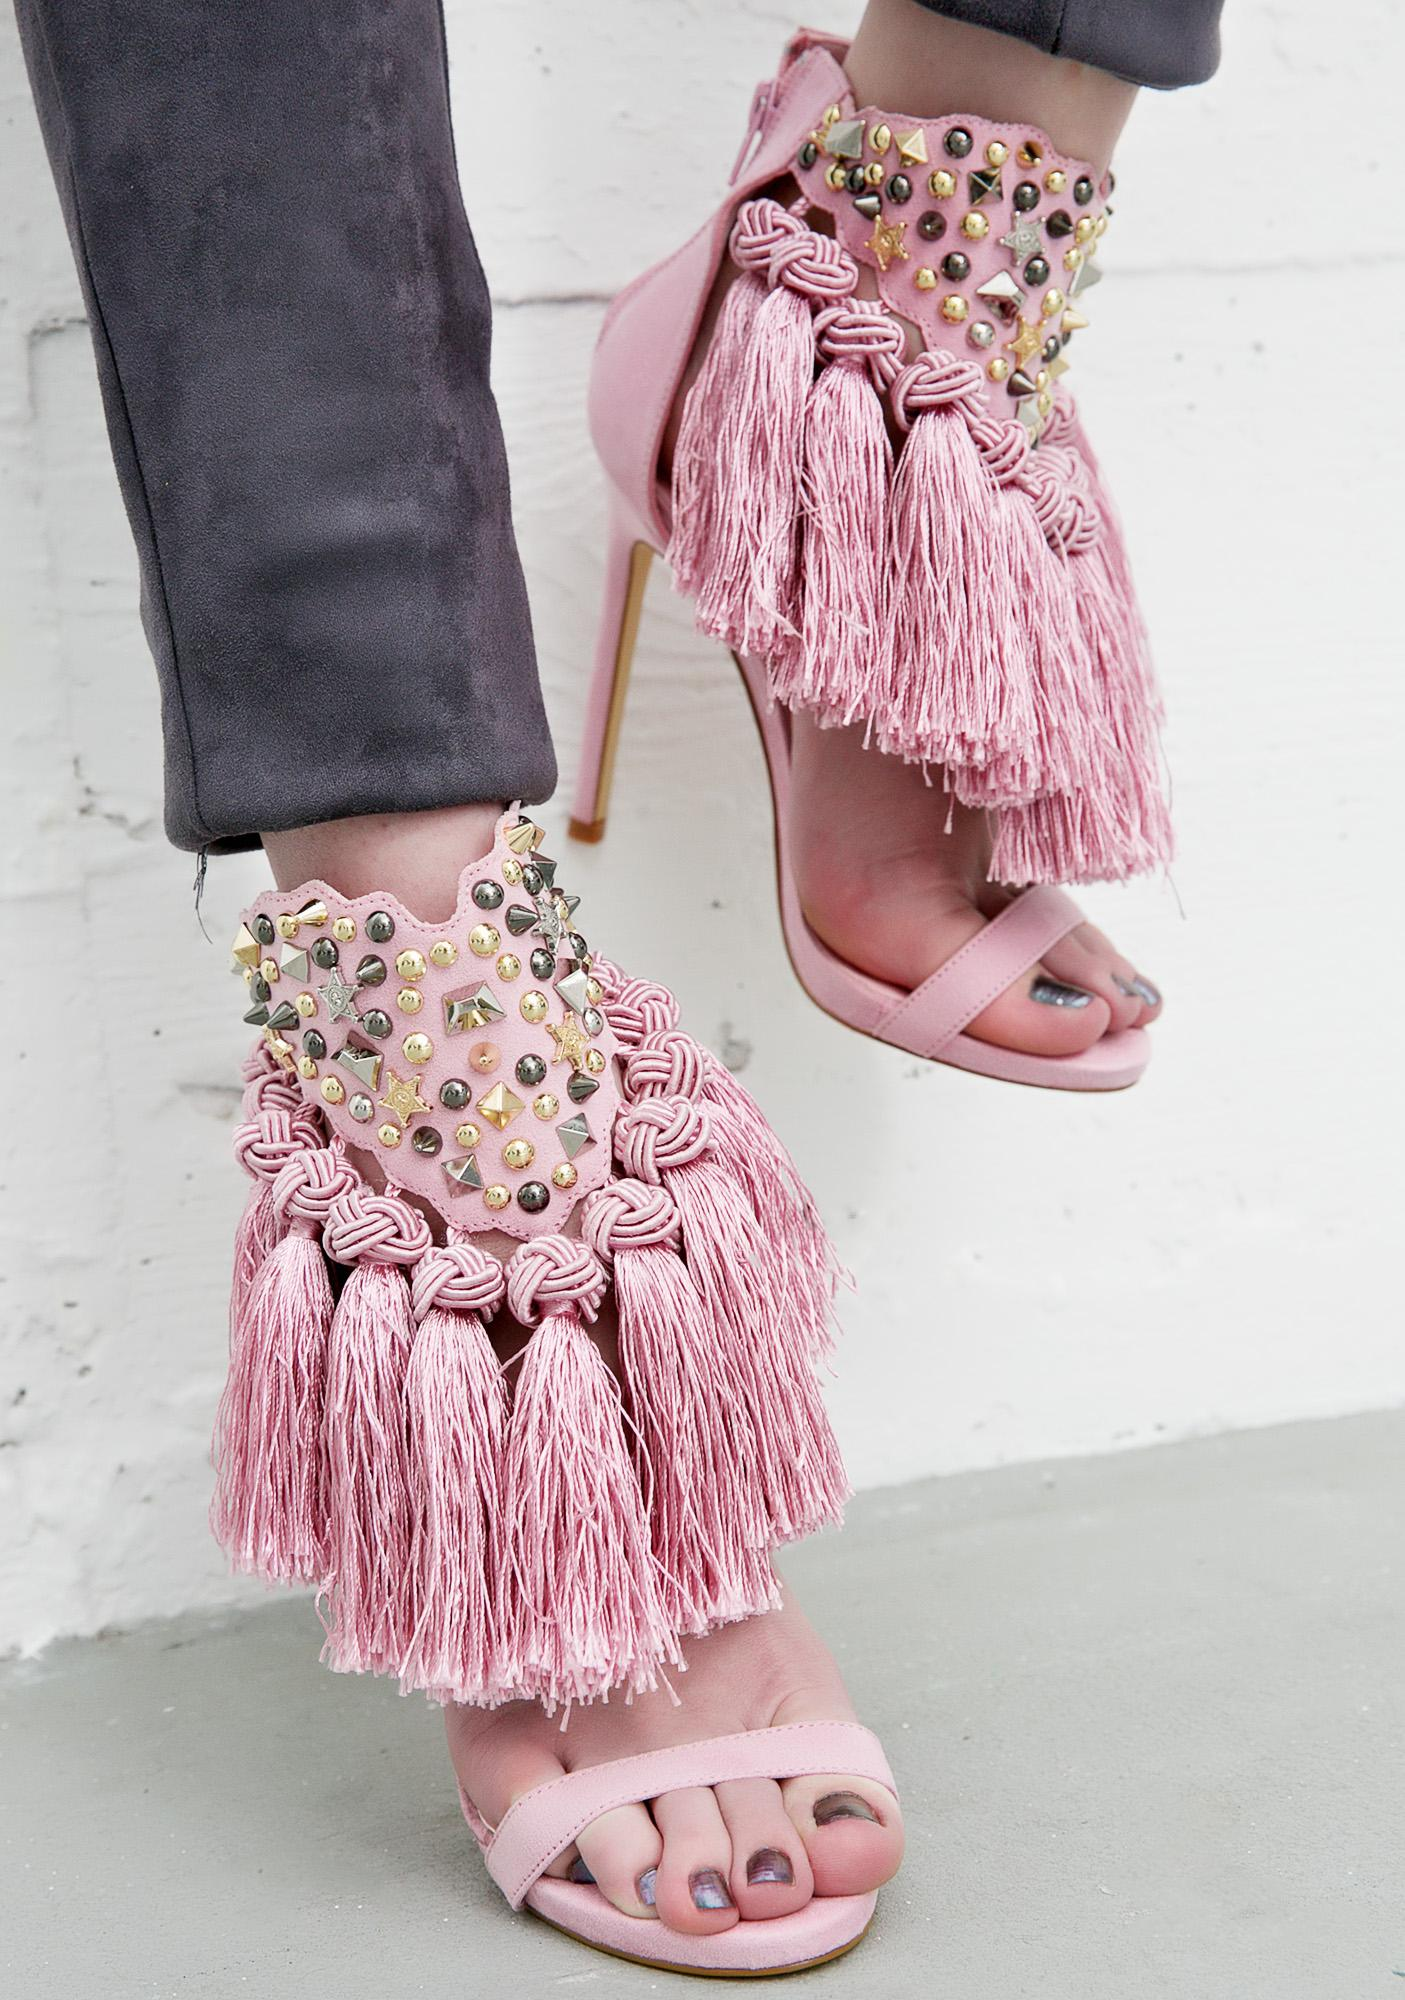 Privileged Ciao Bella Tassel Heels